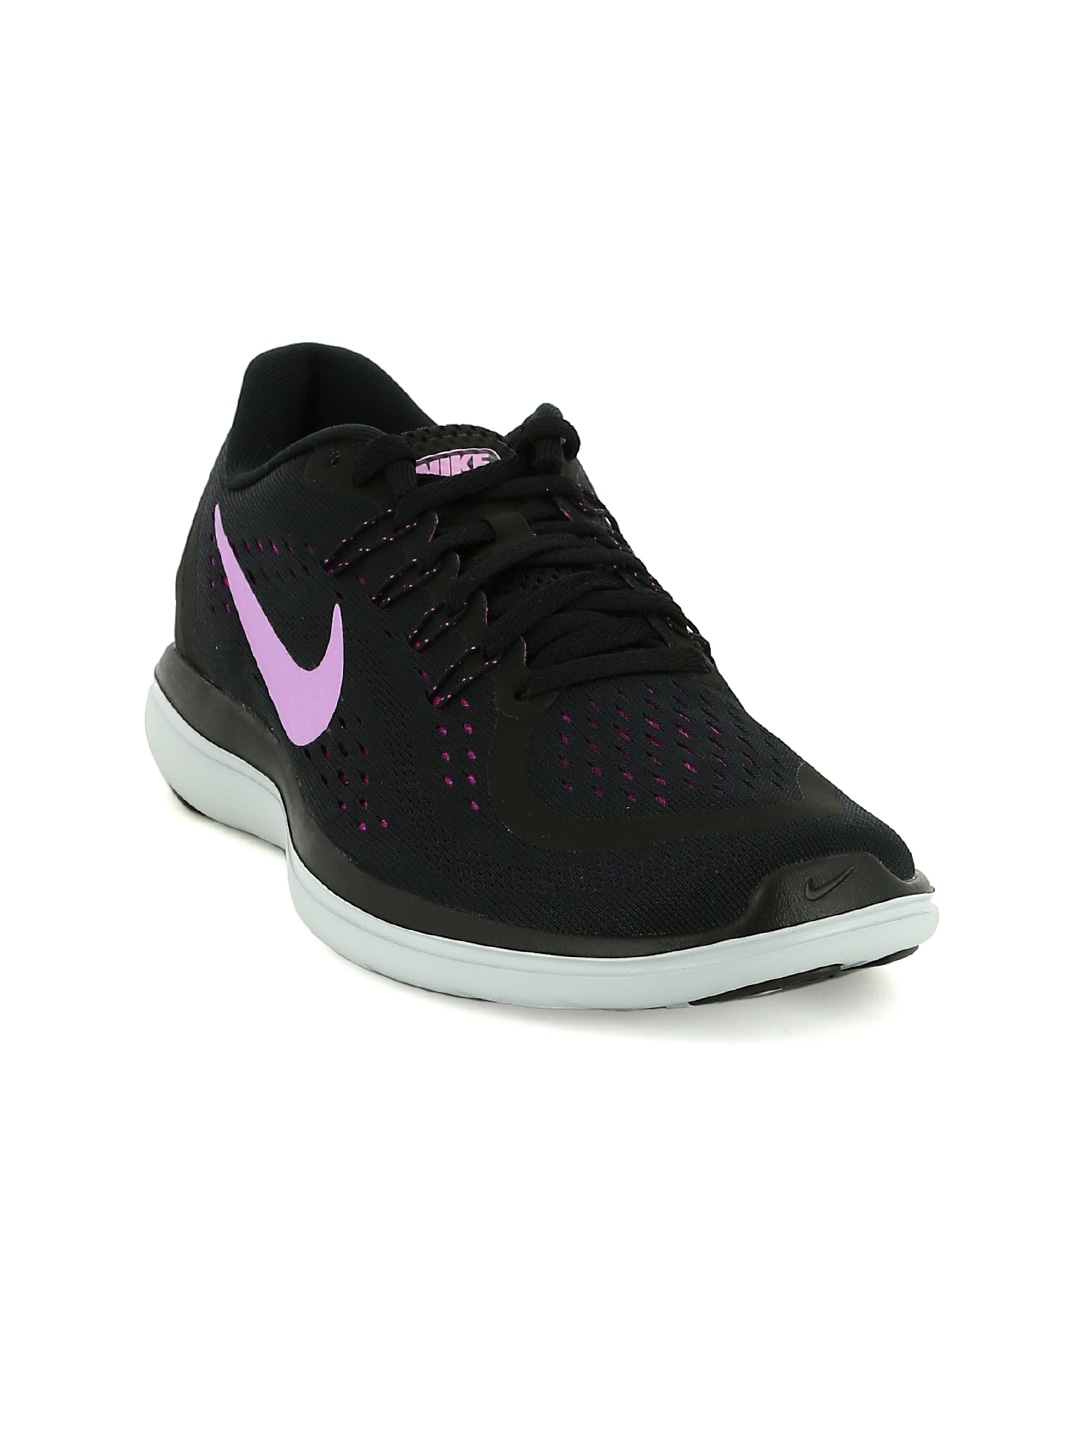 531afc9fe4a8 Nike Shoes - Buy Nike Shoes for Men